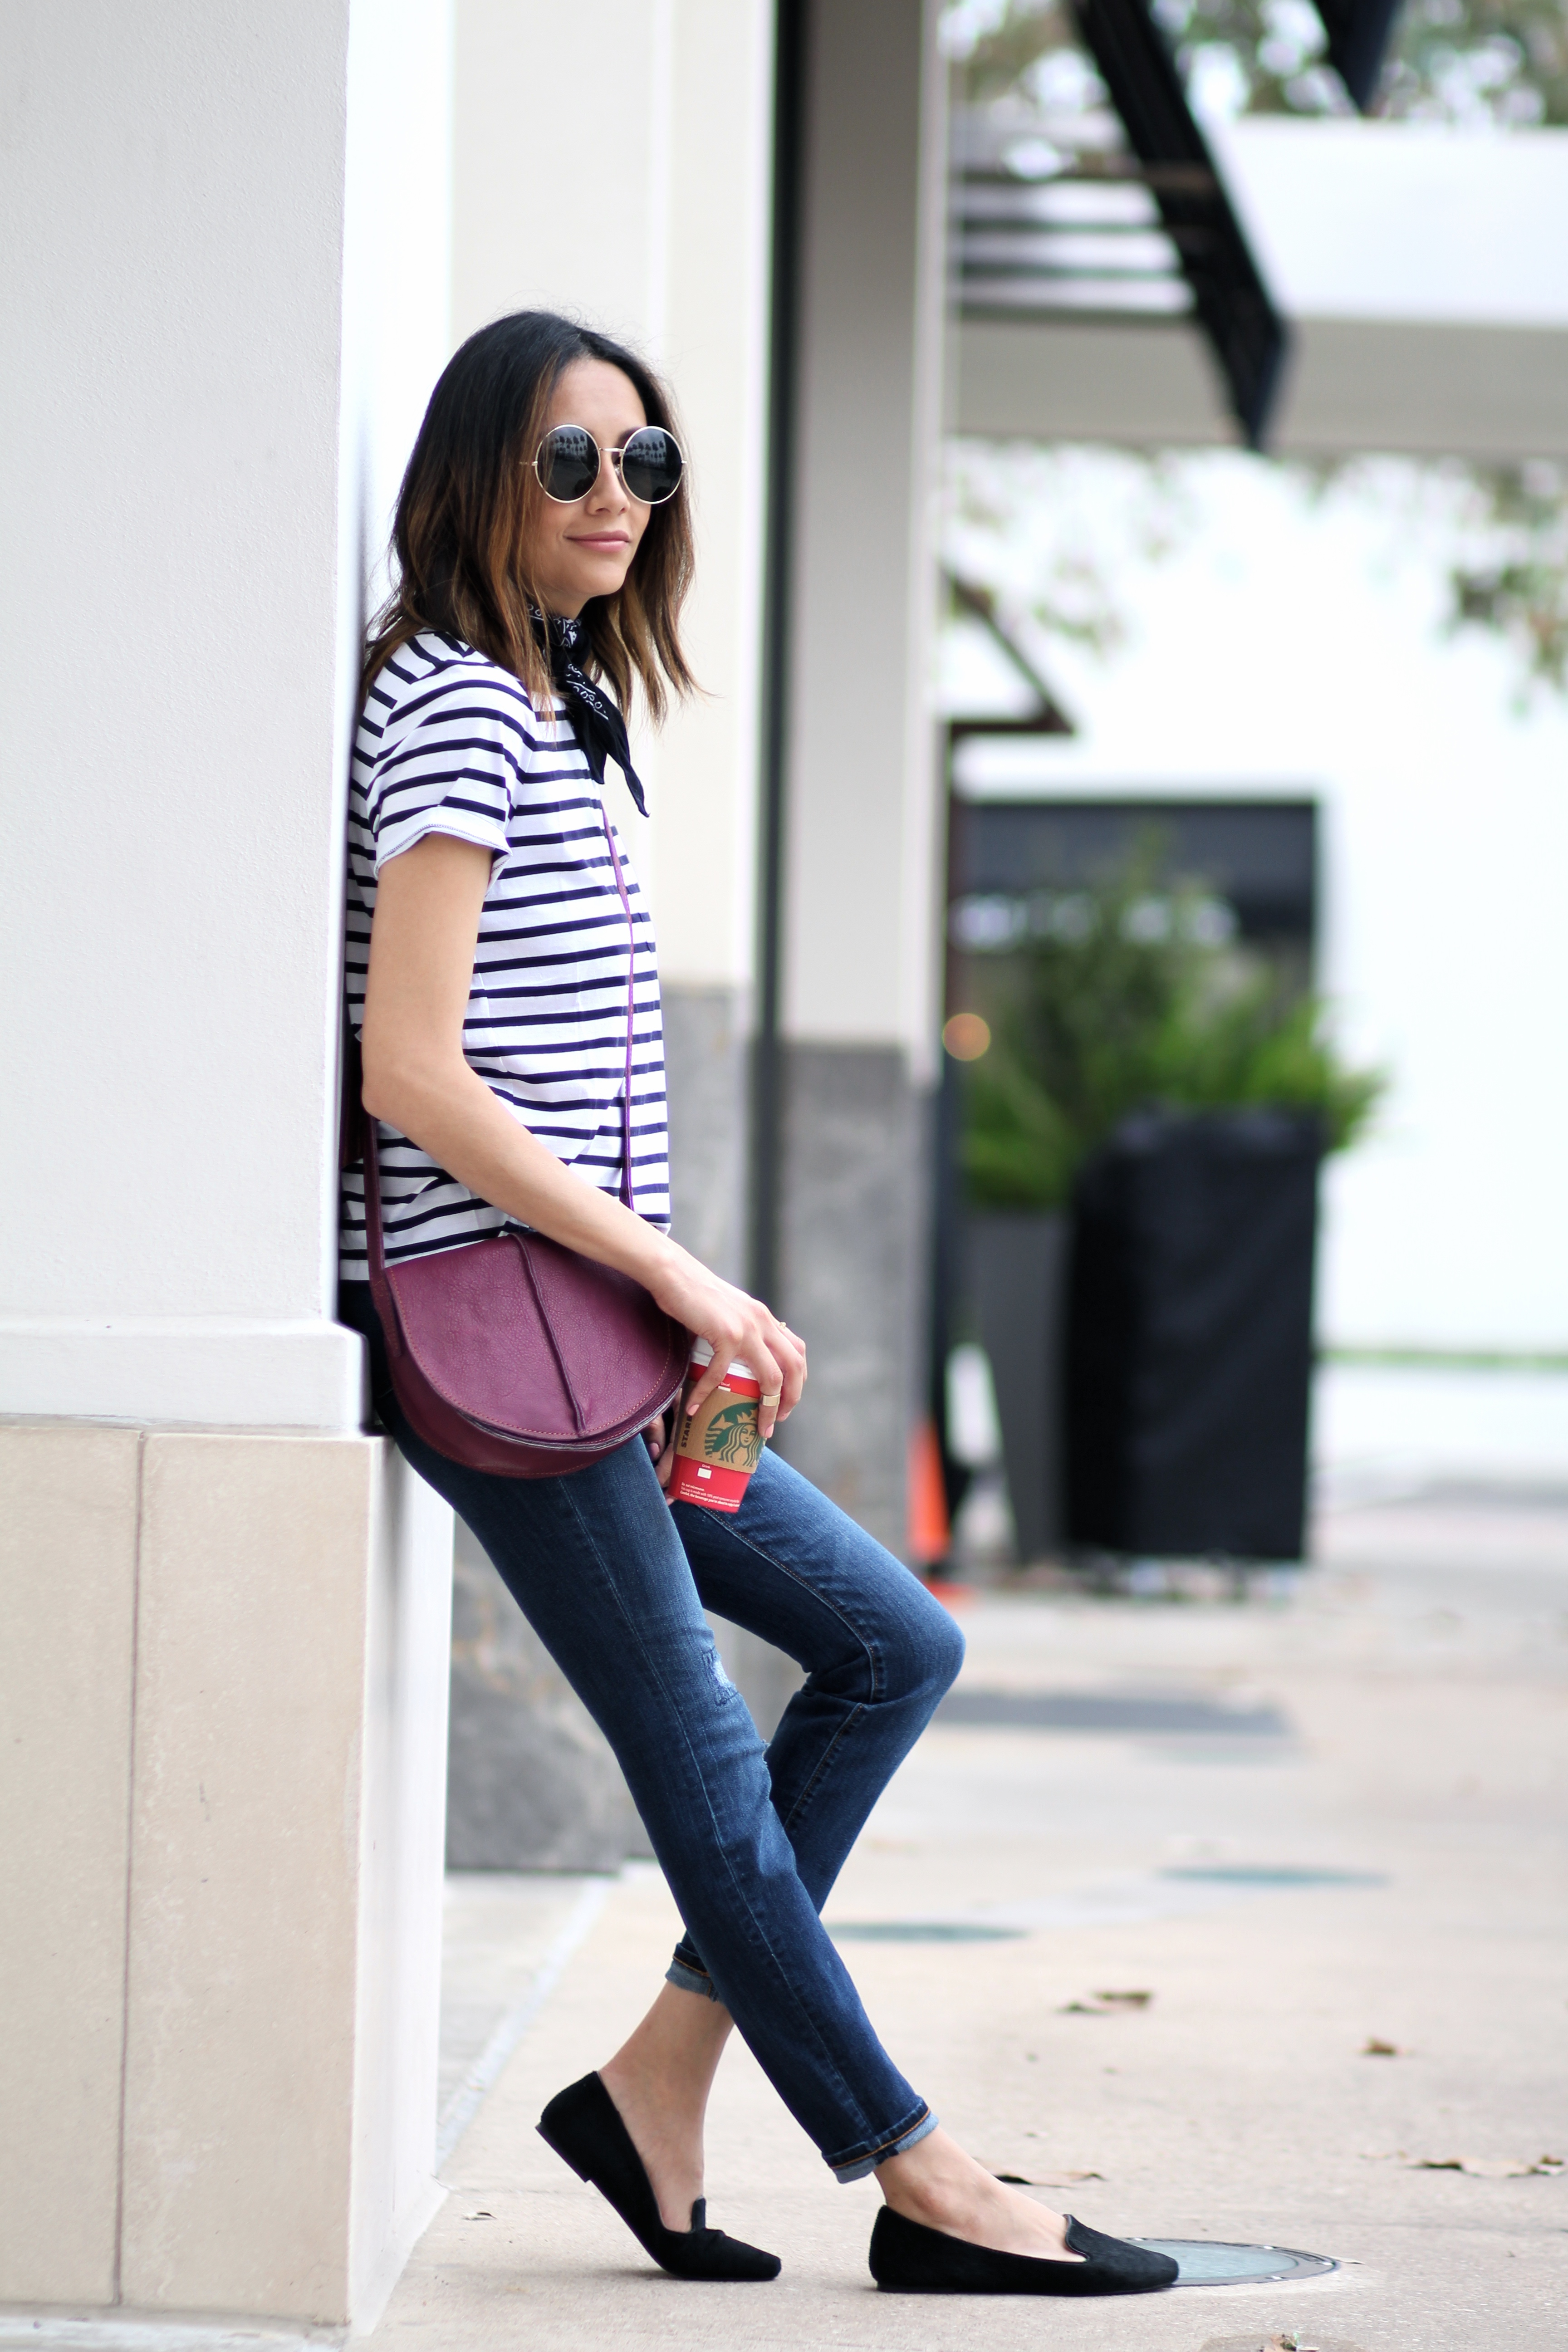 a casual look with a raspberry saddle bag for a pop of color